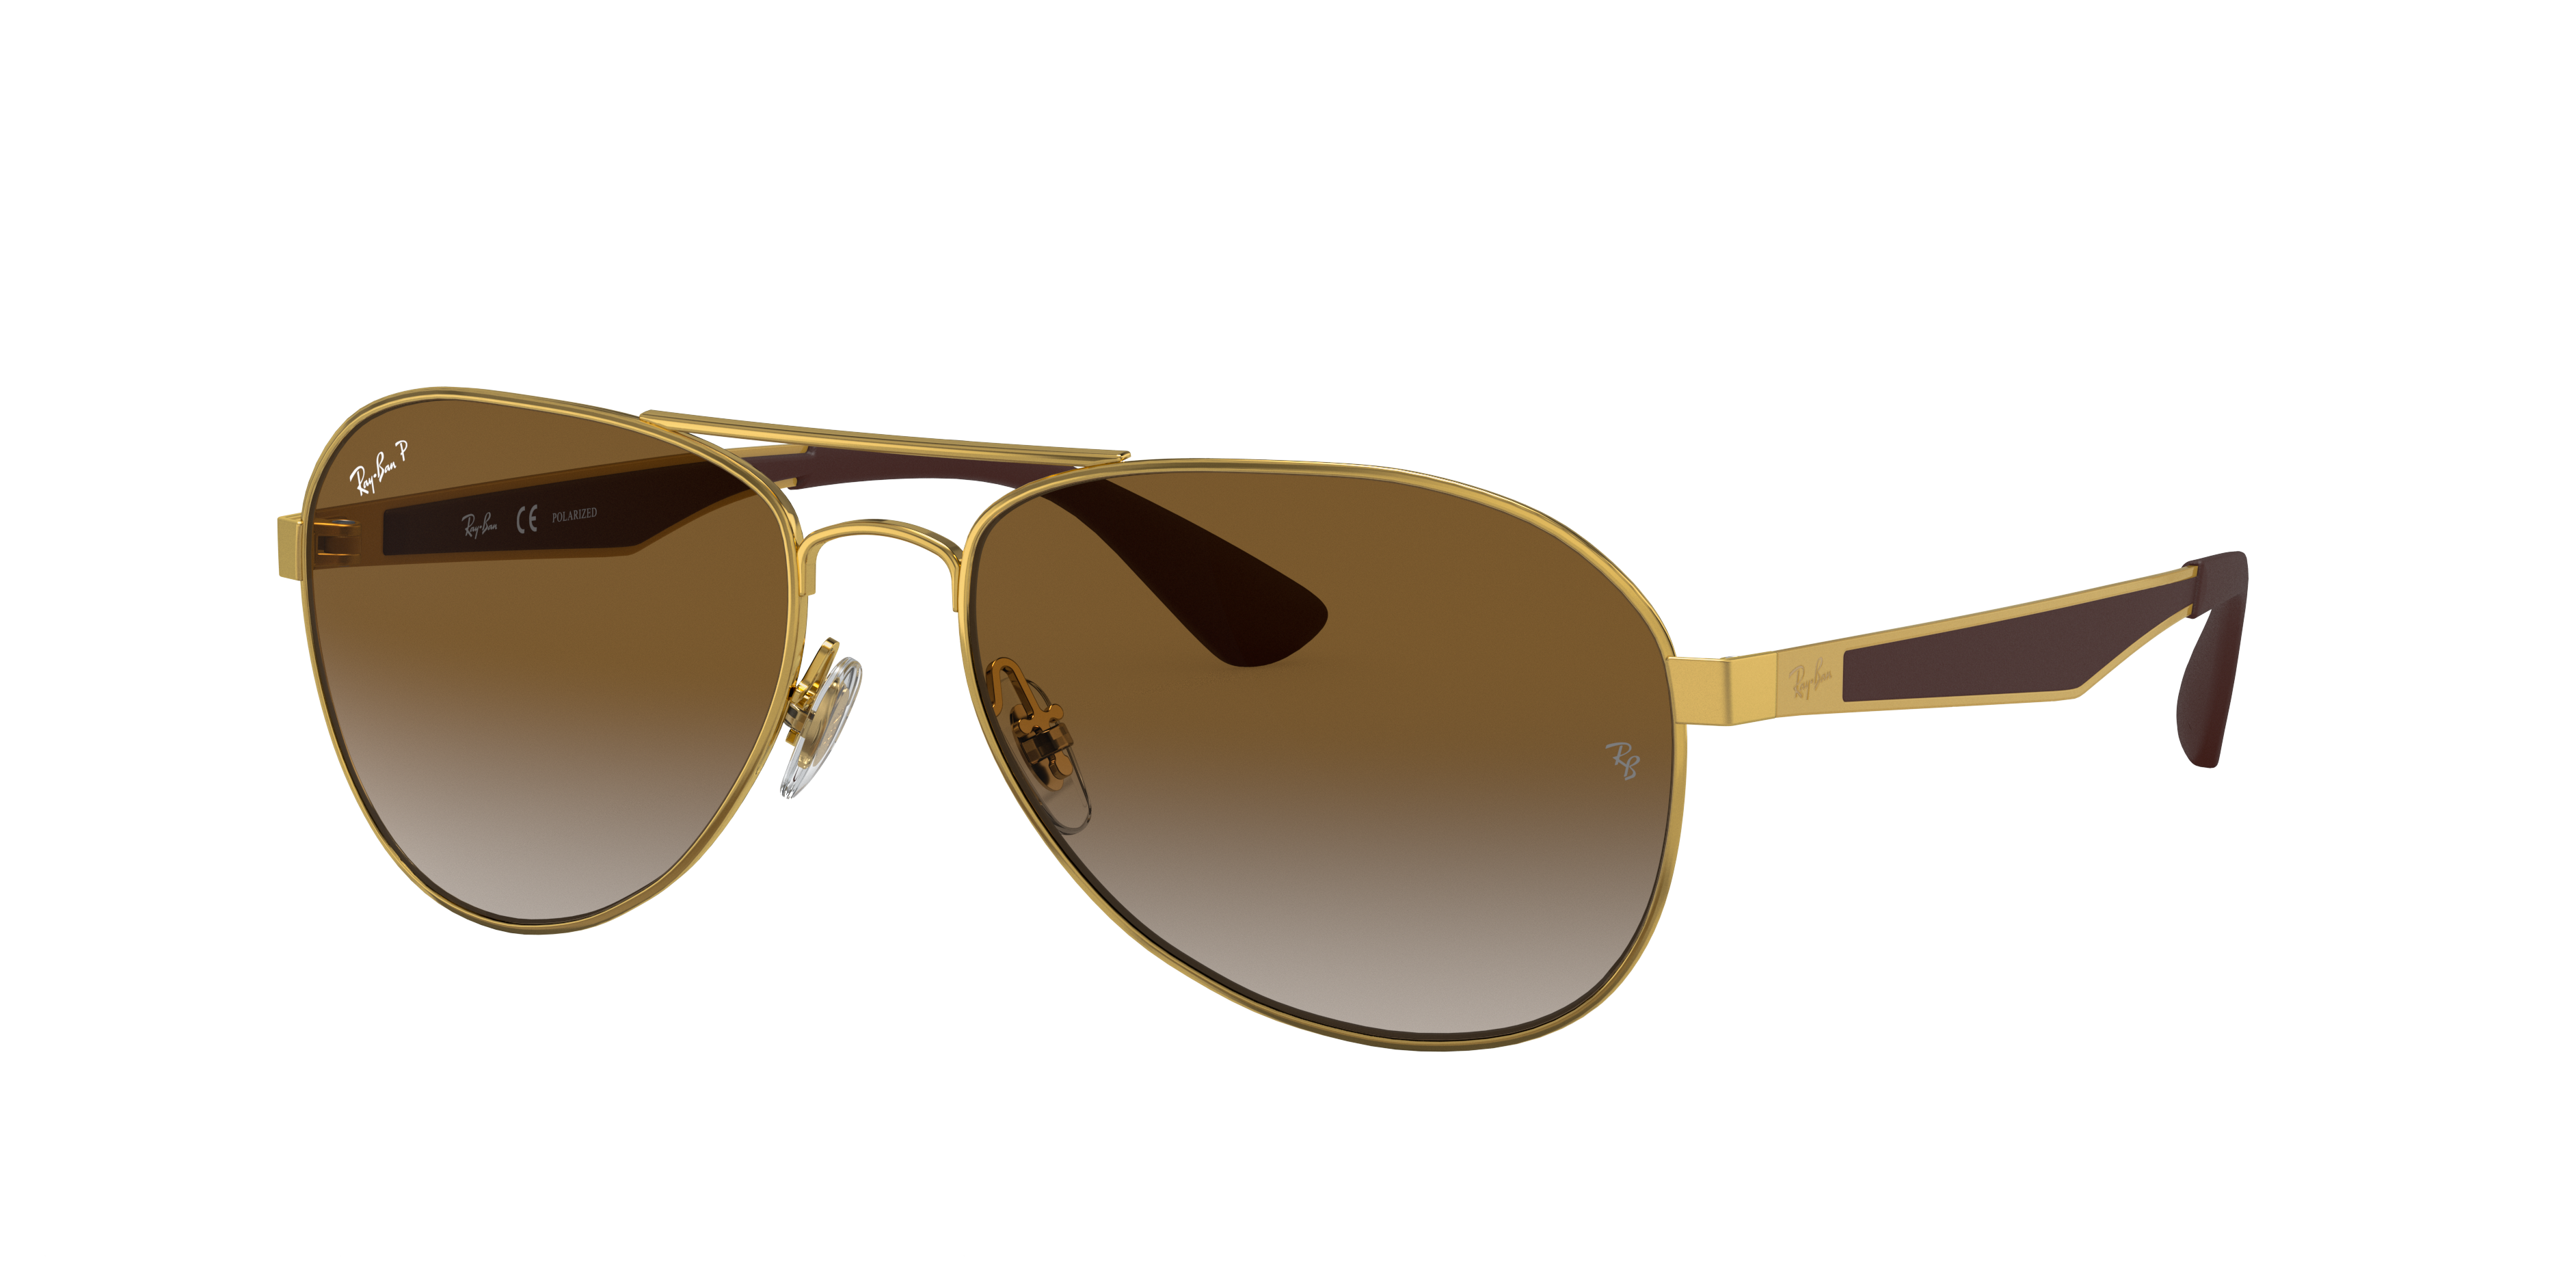 Ray-Ban Rb3549 Gold, Polarized Brown Lenses - RB3549